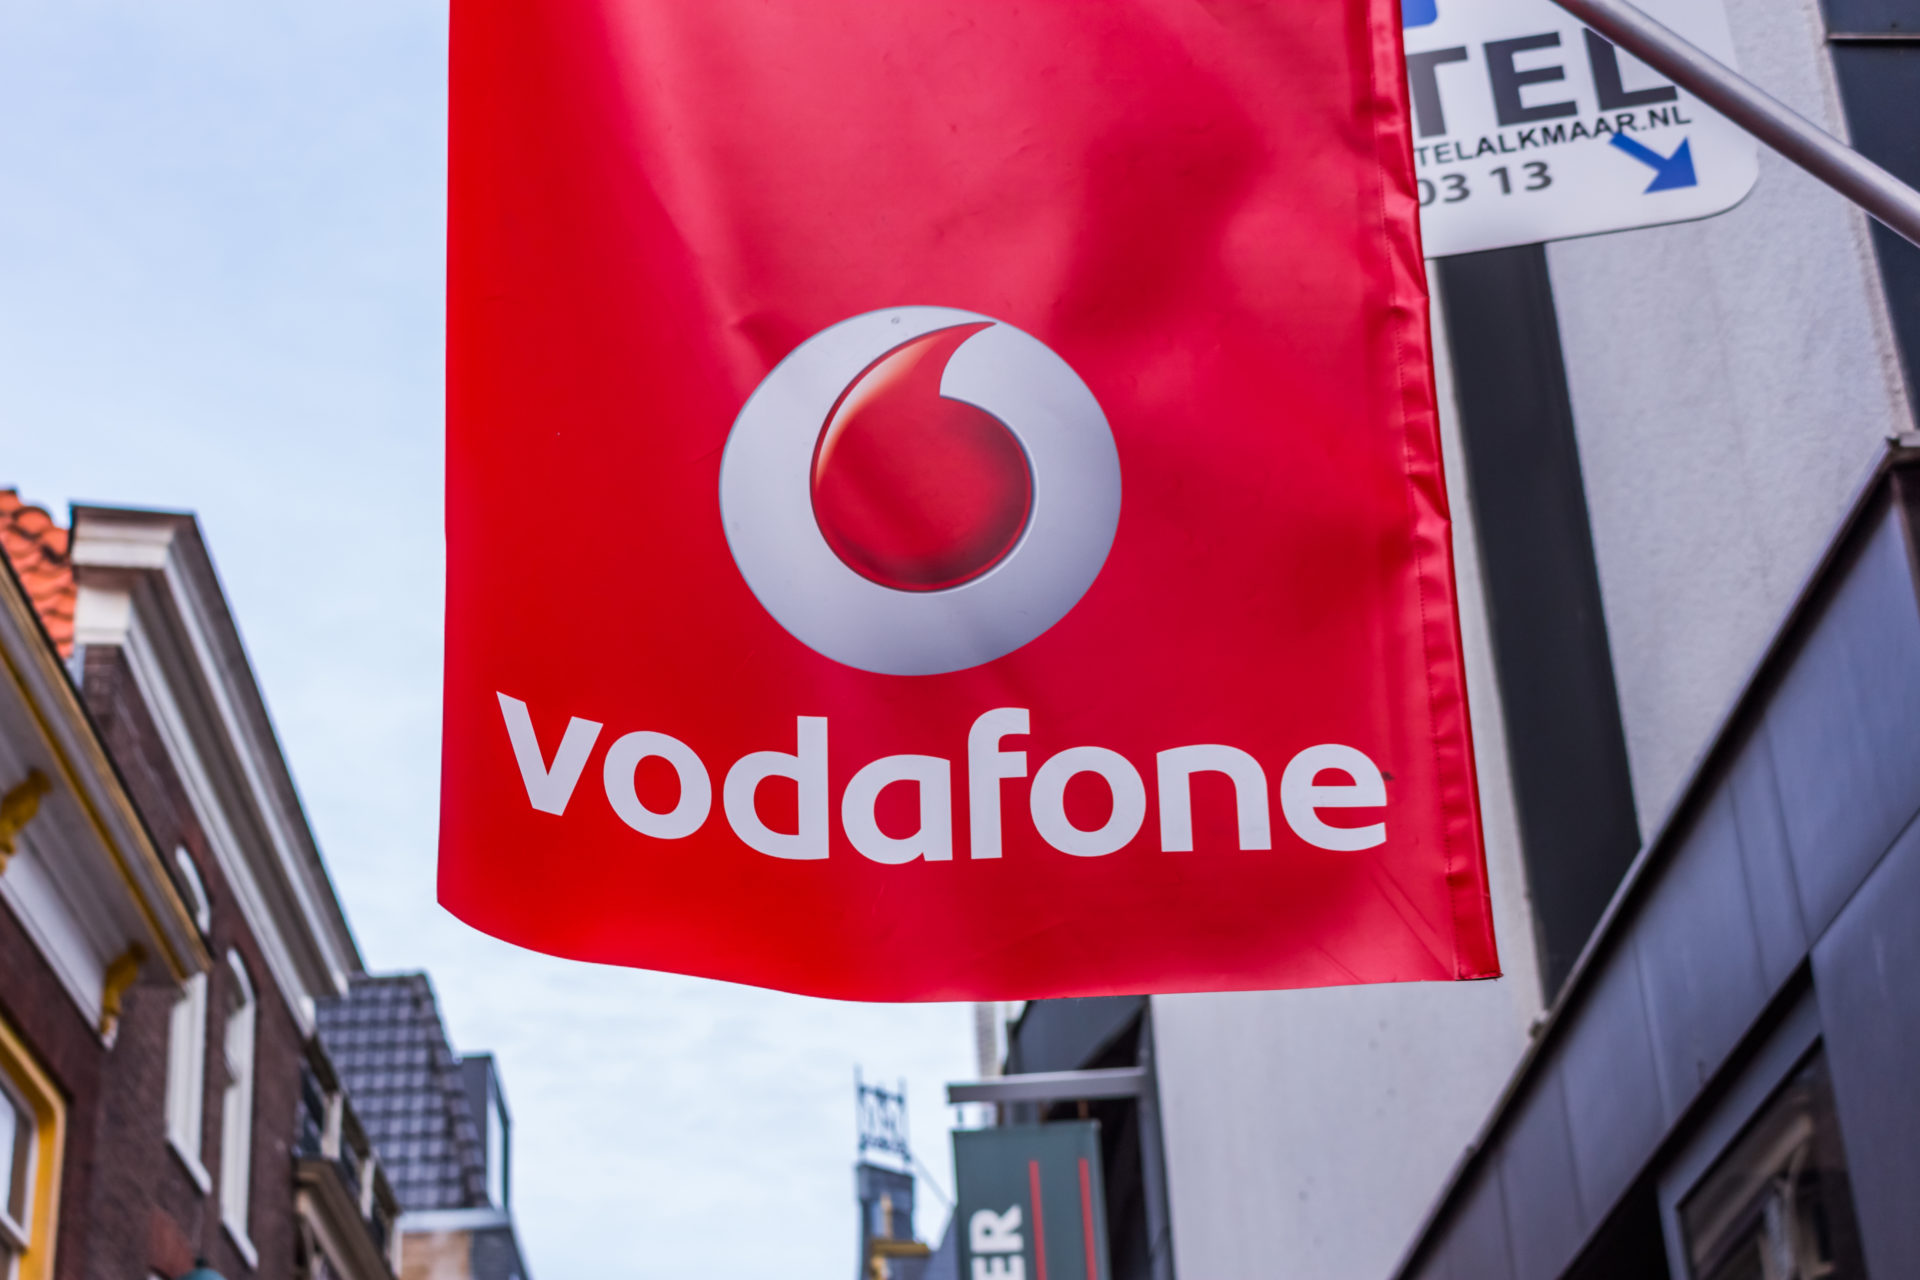 Vodafone 5G launches in seven UK cities, offers unlimited data plans